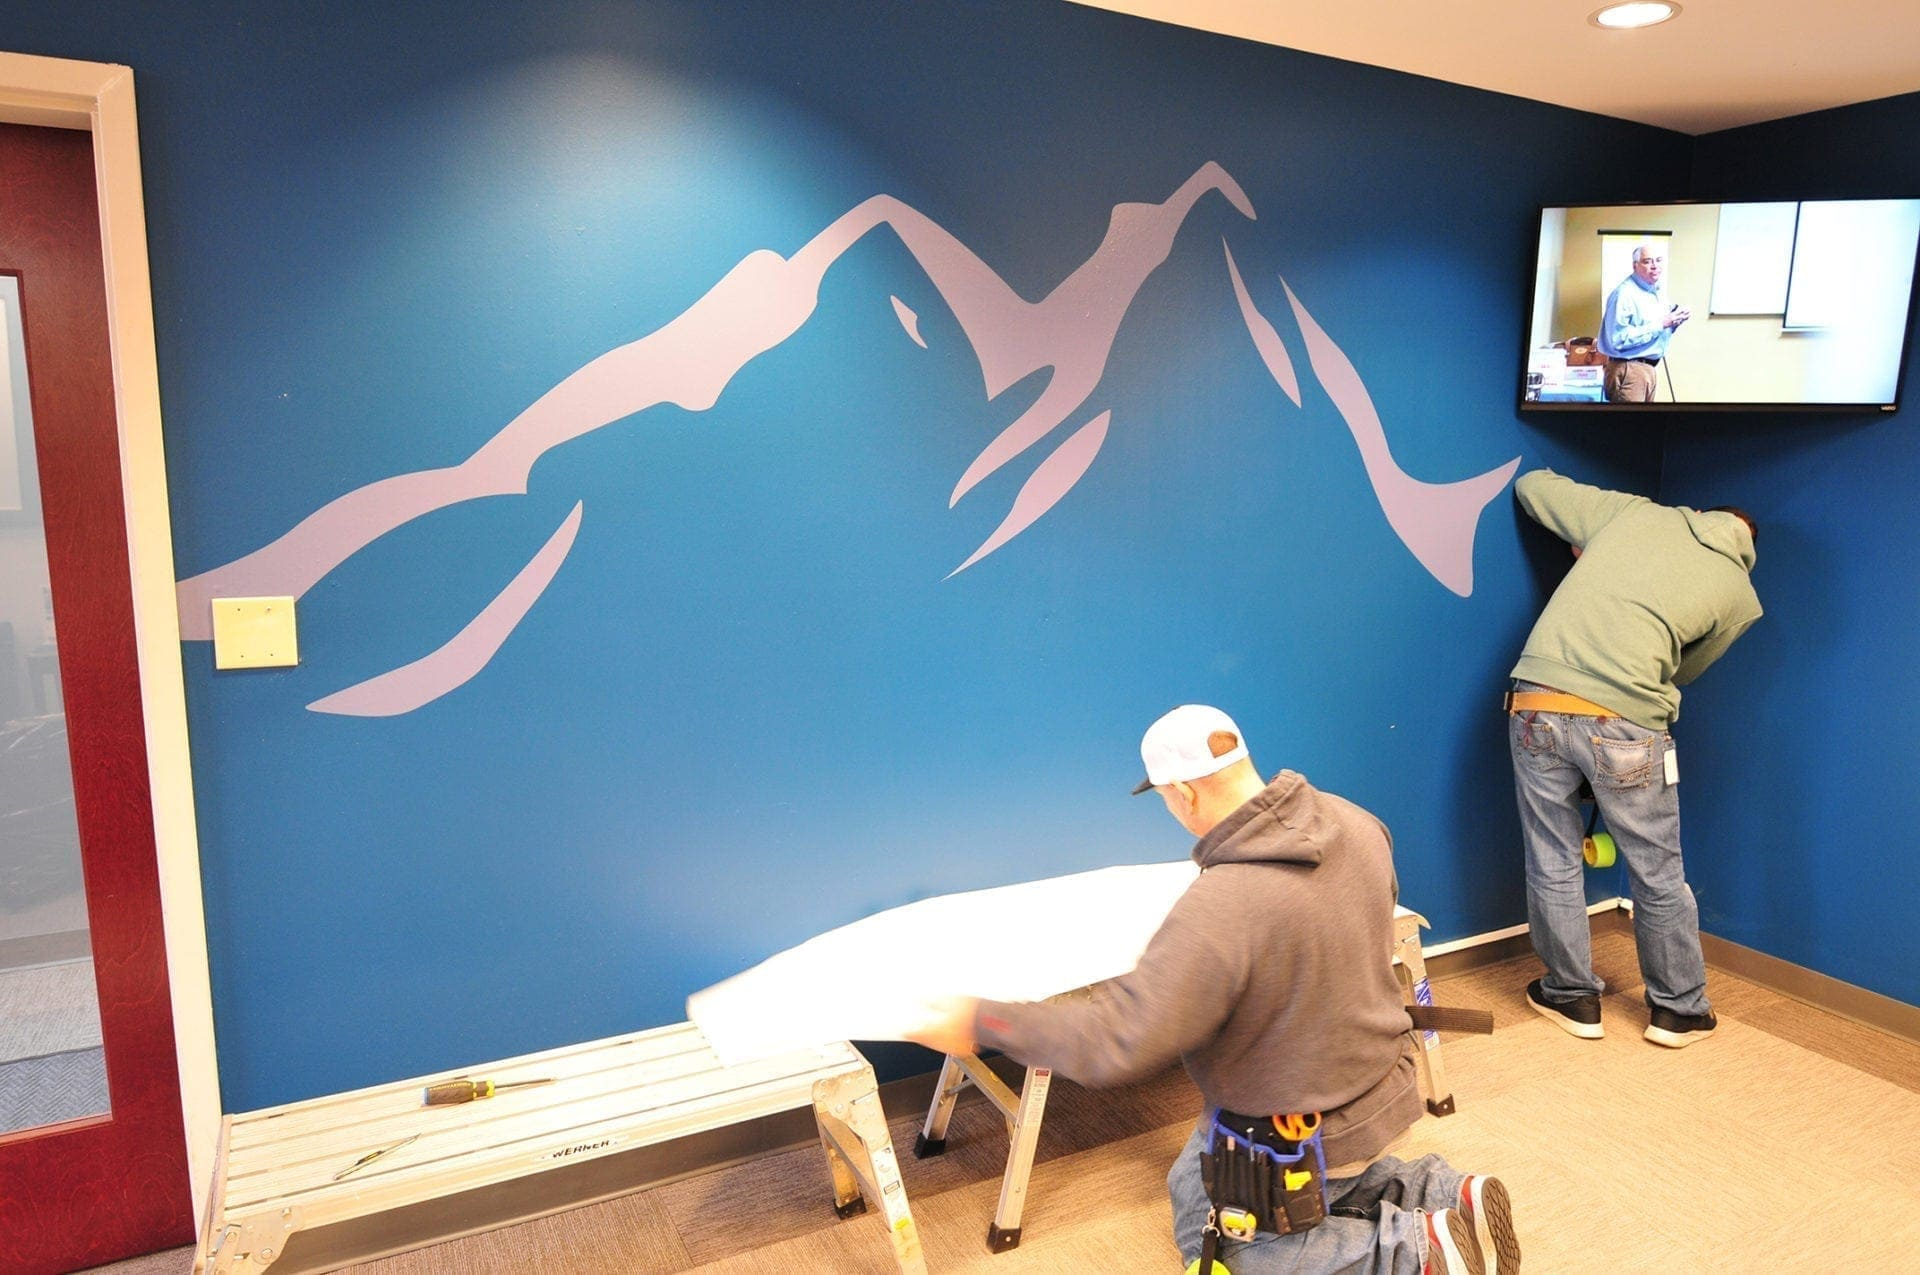 Two workers install custom vinyl logo graphic onto wall at High Point Clinical Trials Center lobby